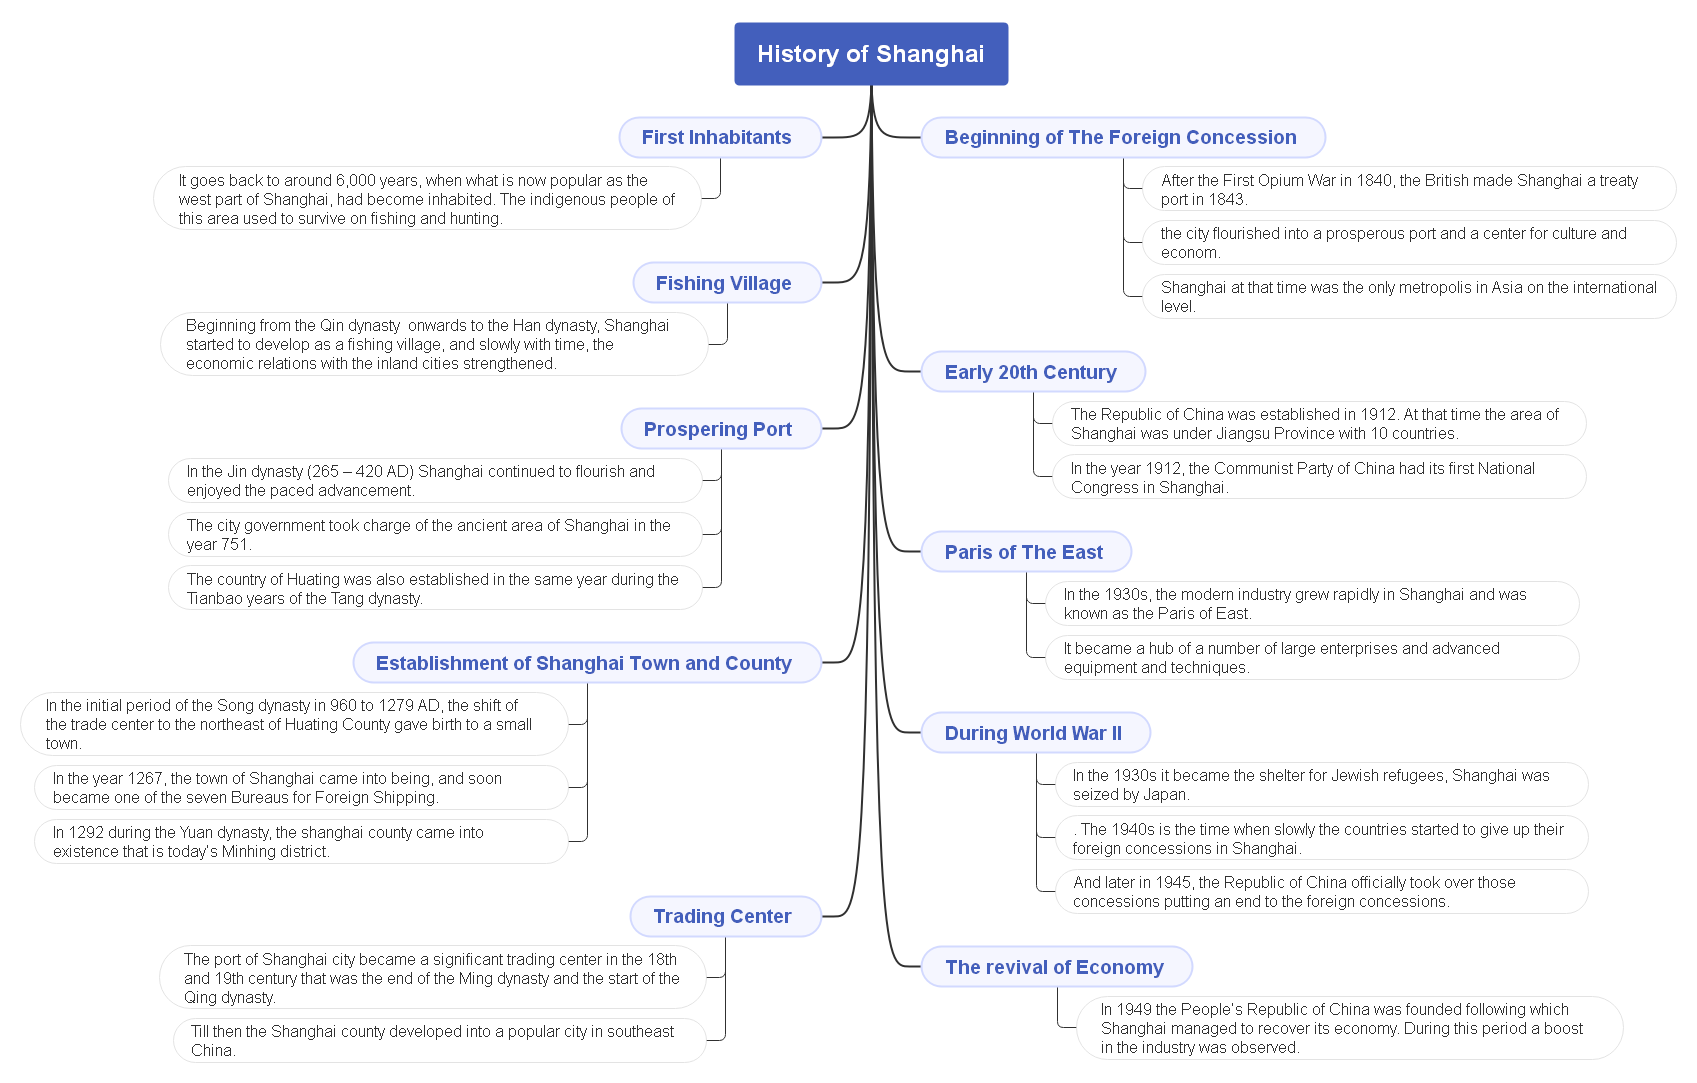 a mind map of history of shanghai